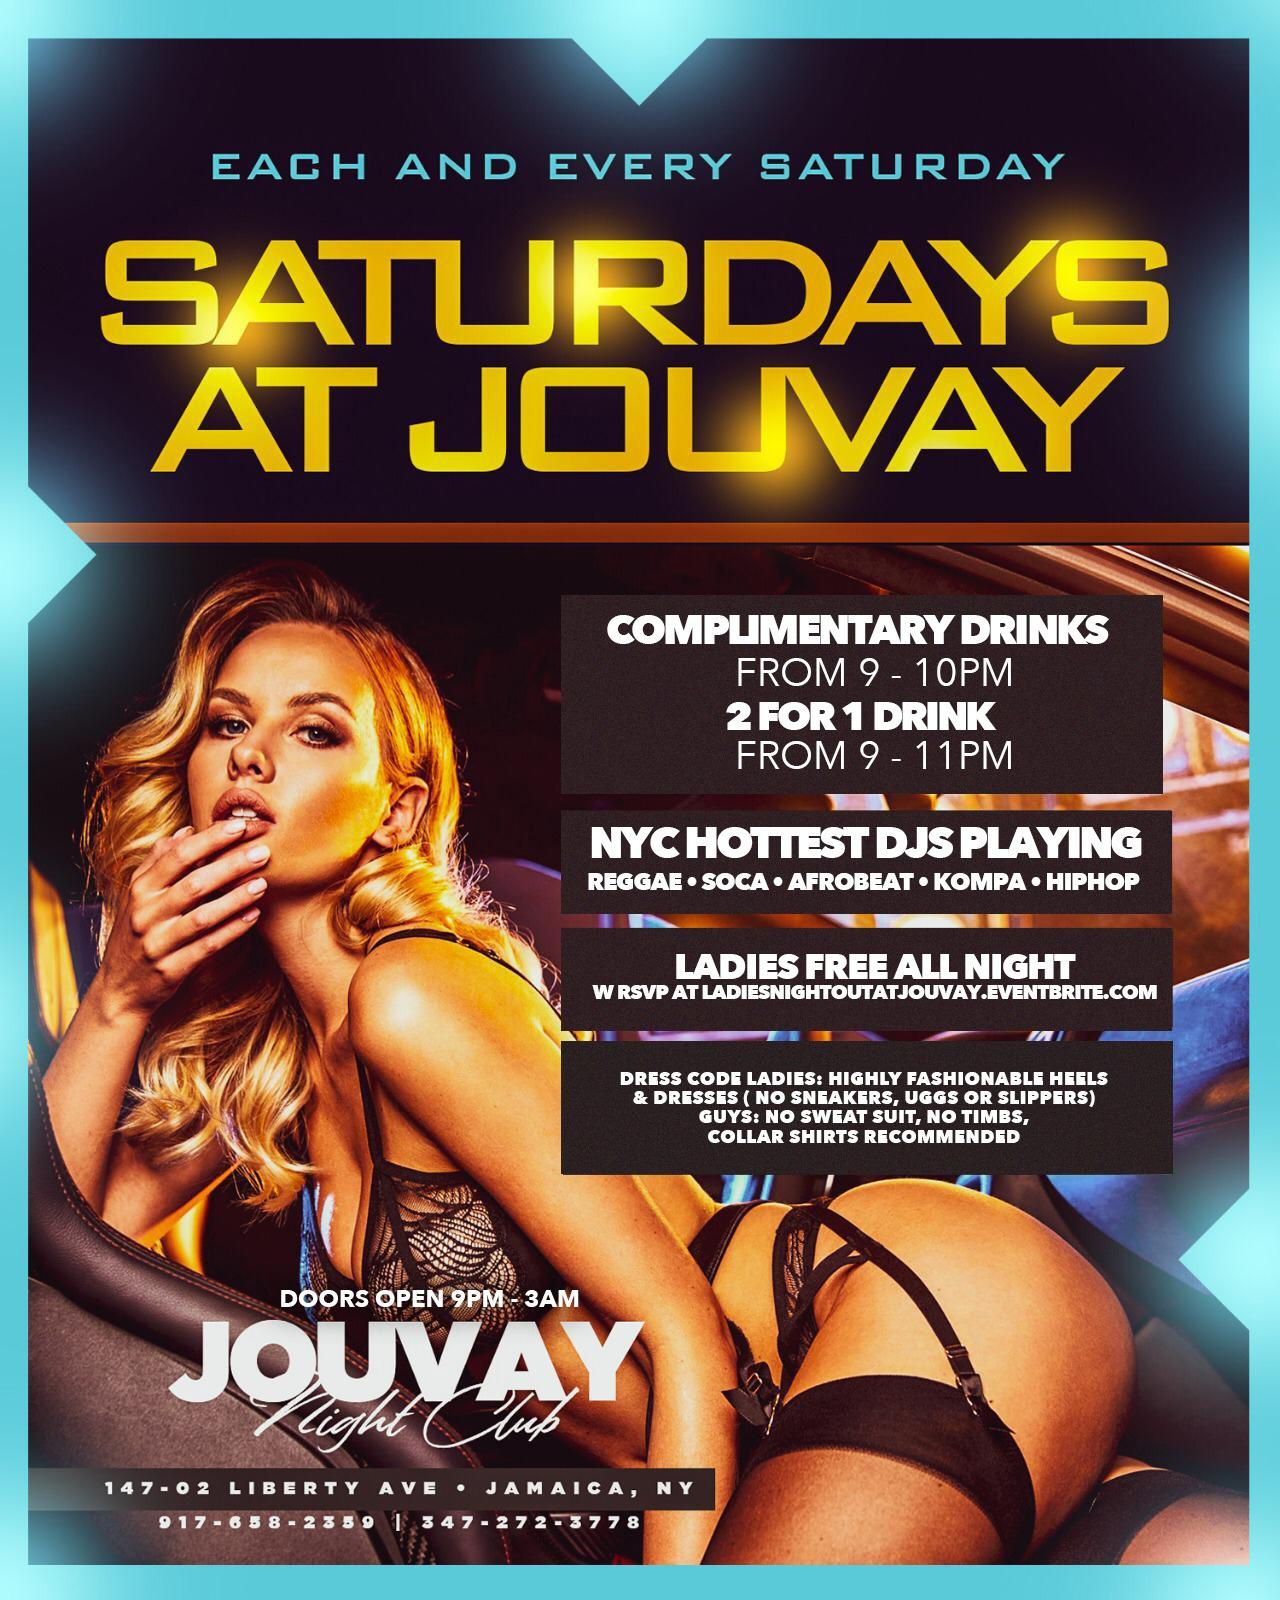 The hottest event  Saturdays at jouvay  ladies are no cover all night